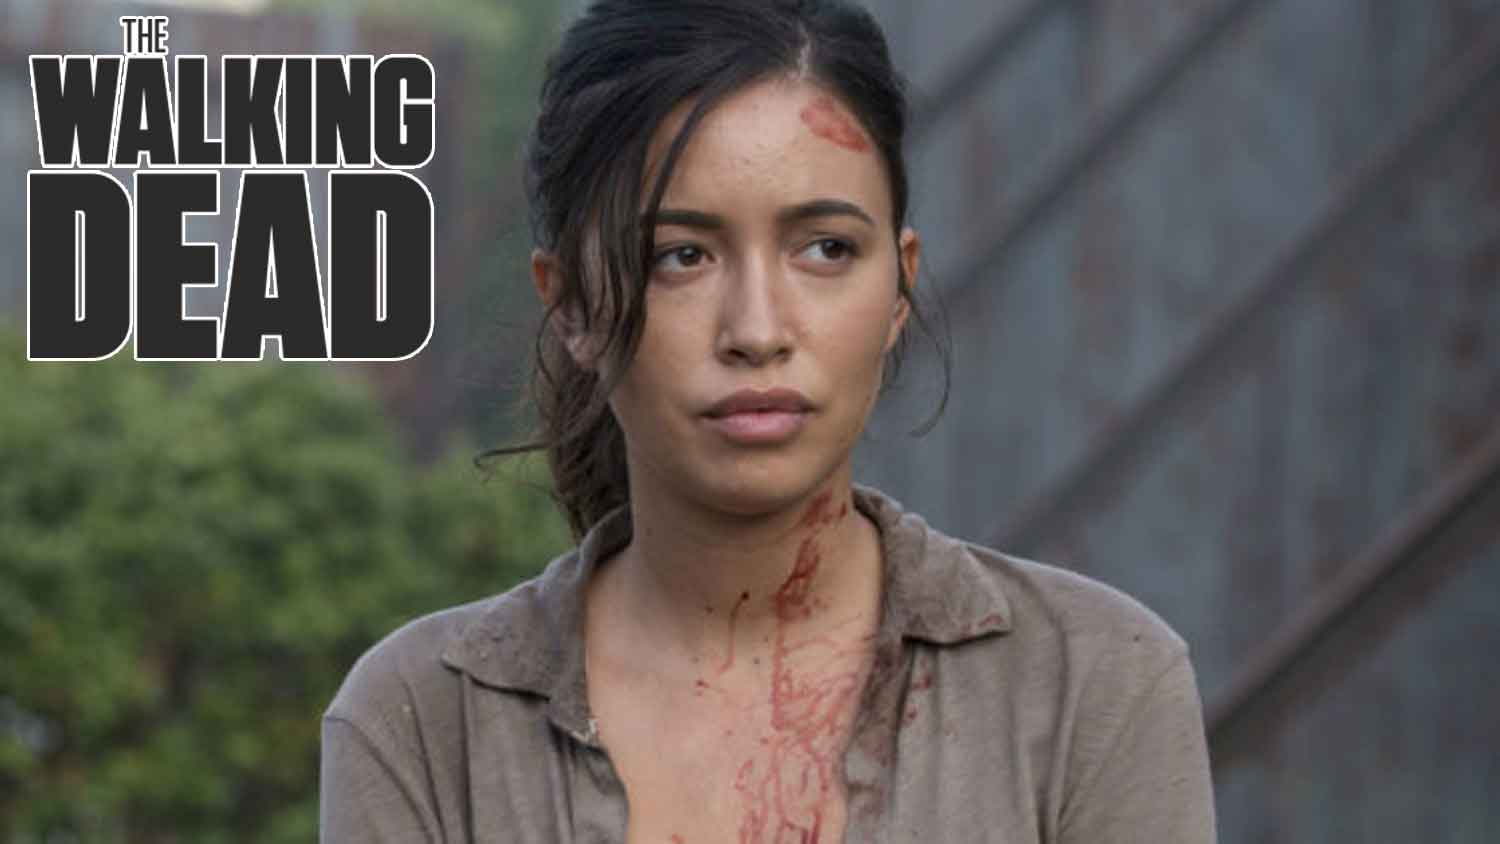 Is 'The Walking Dead' Turning All of Its Cast Vegan?